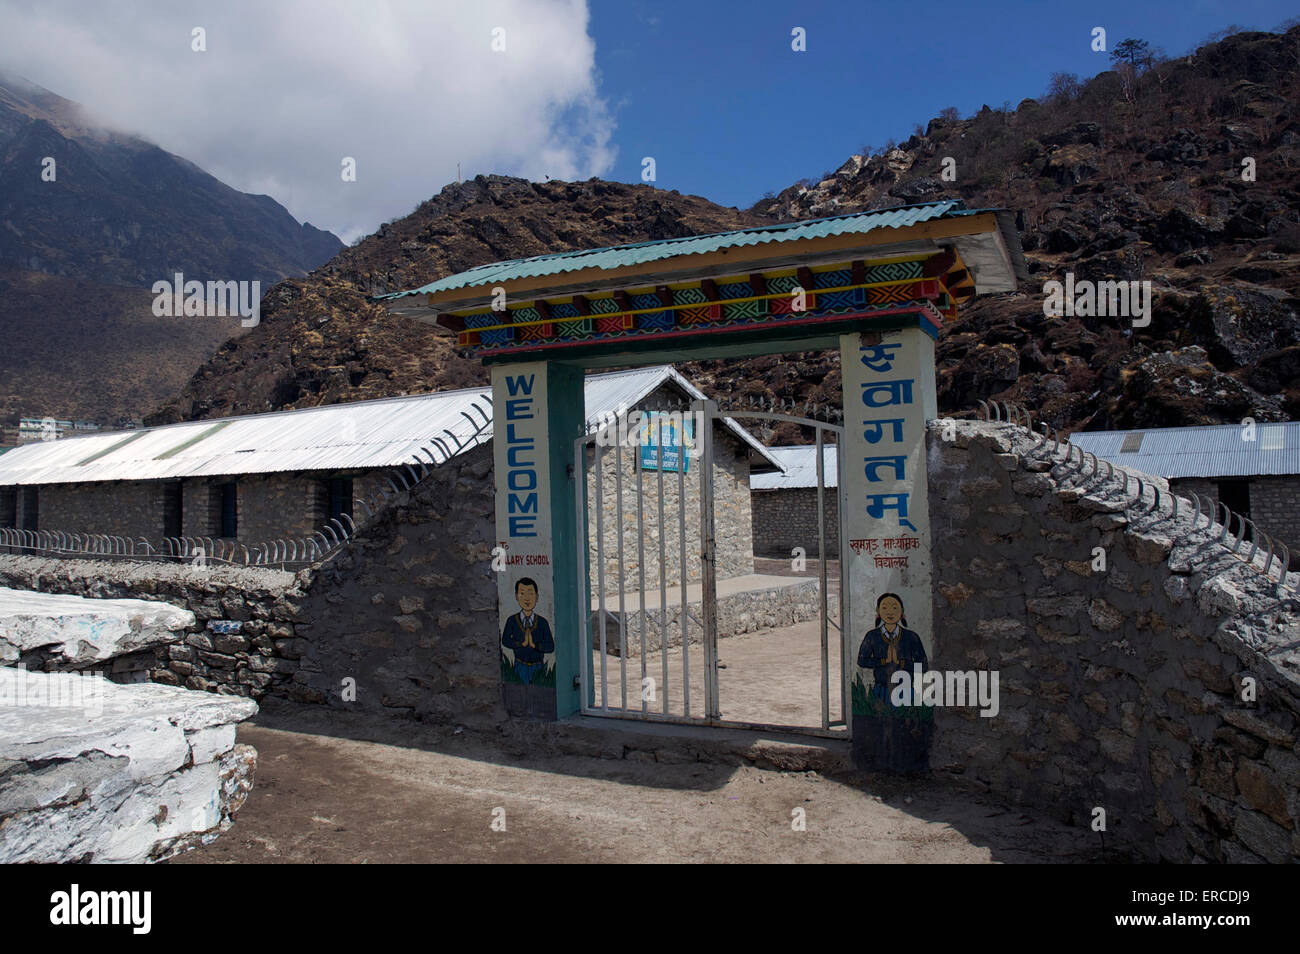 Entrance to the Hillary School, Khumjung, Nepal - Stock Image